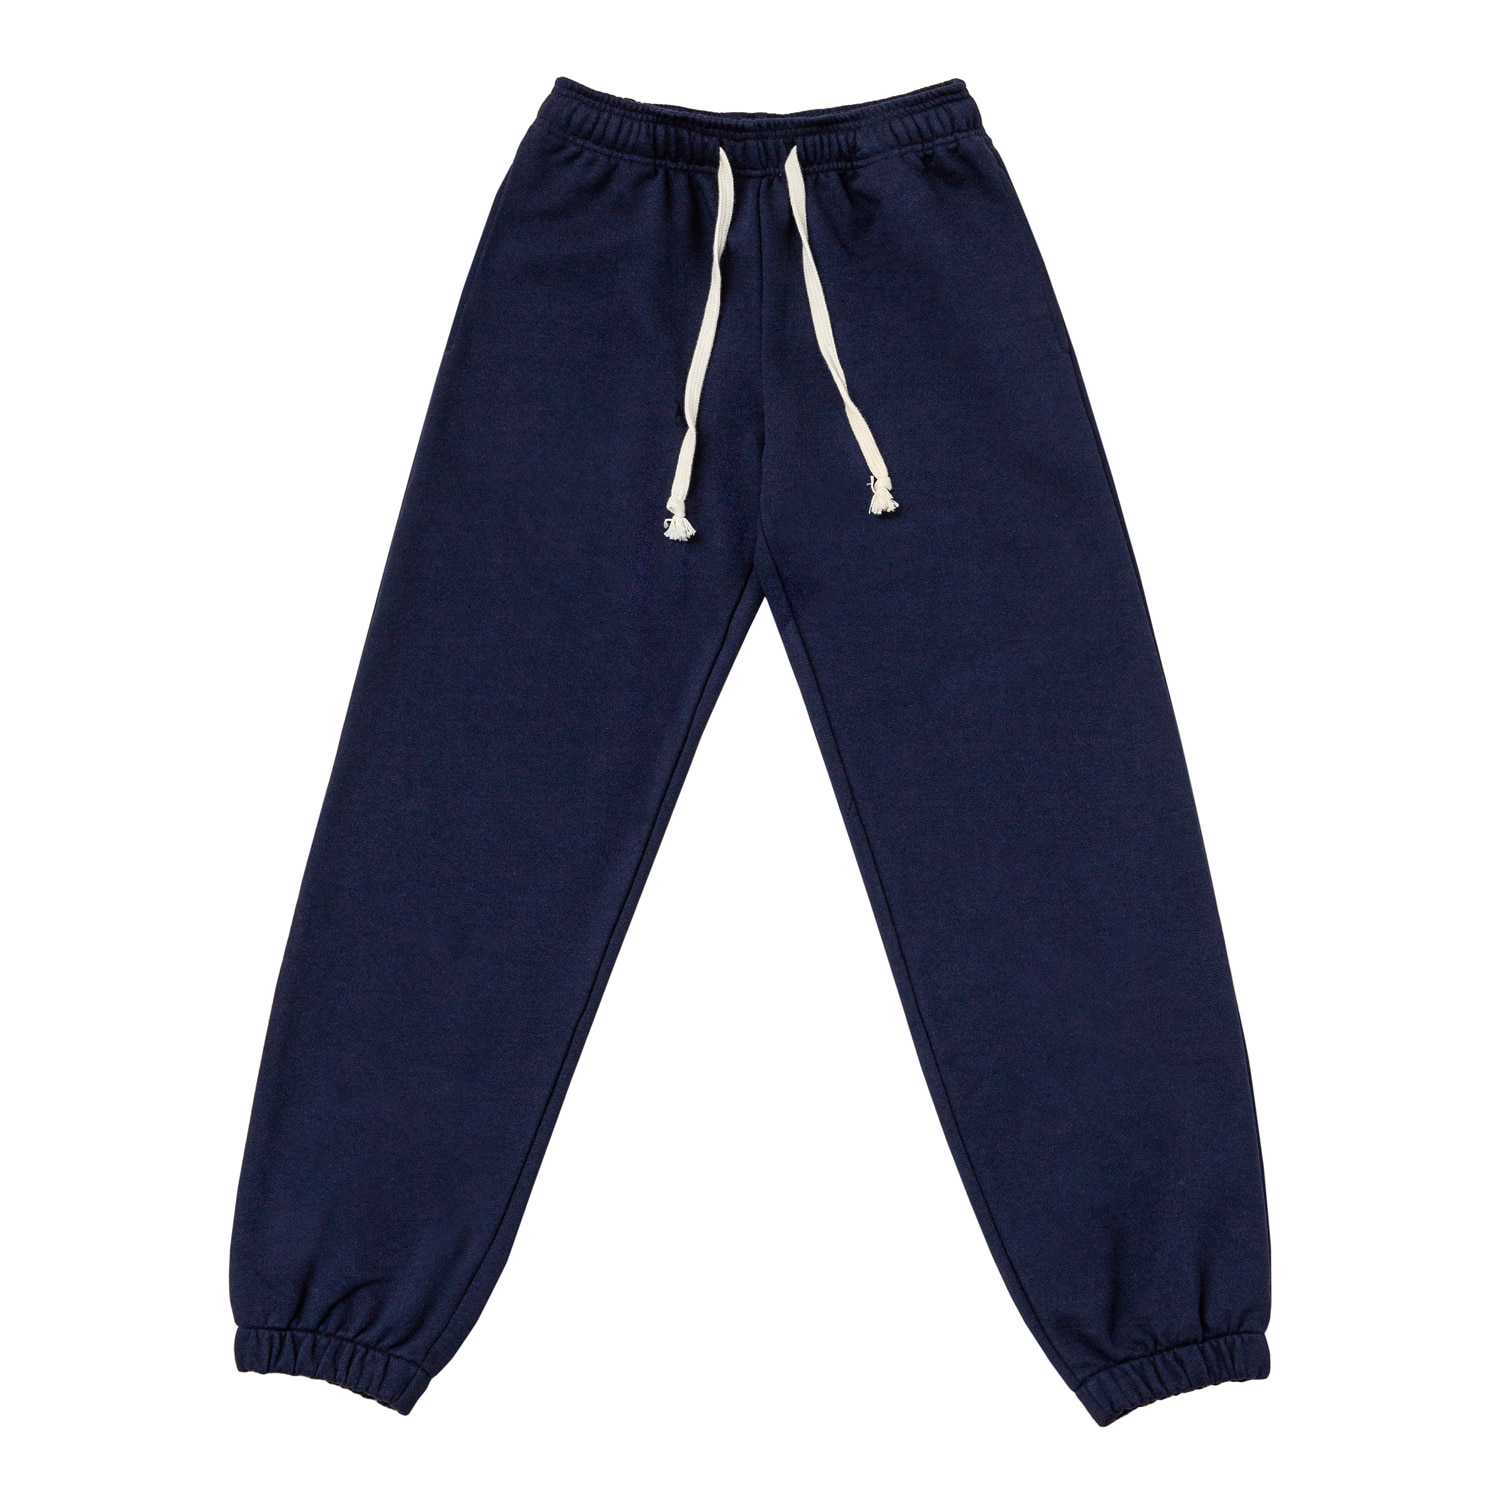 3rd) ORE COTTON 005 jogger PT Navy